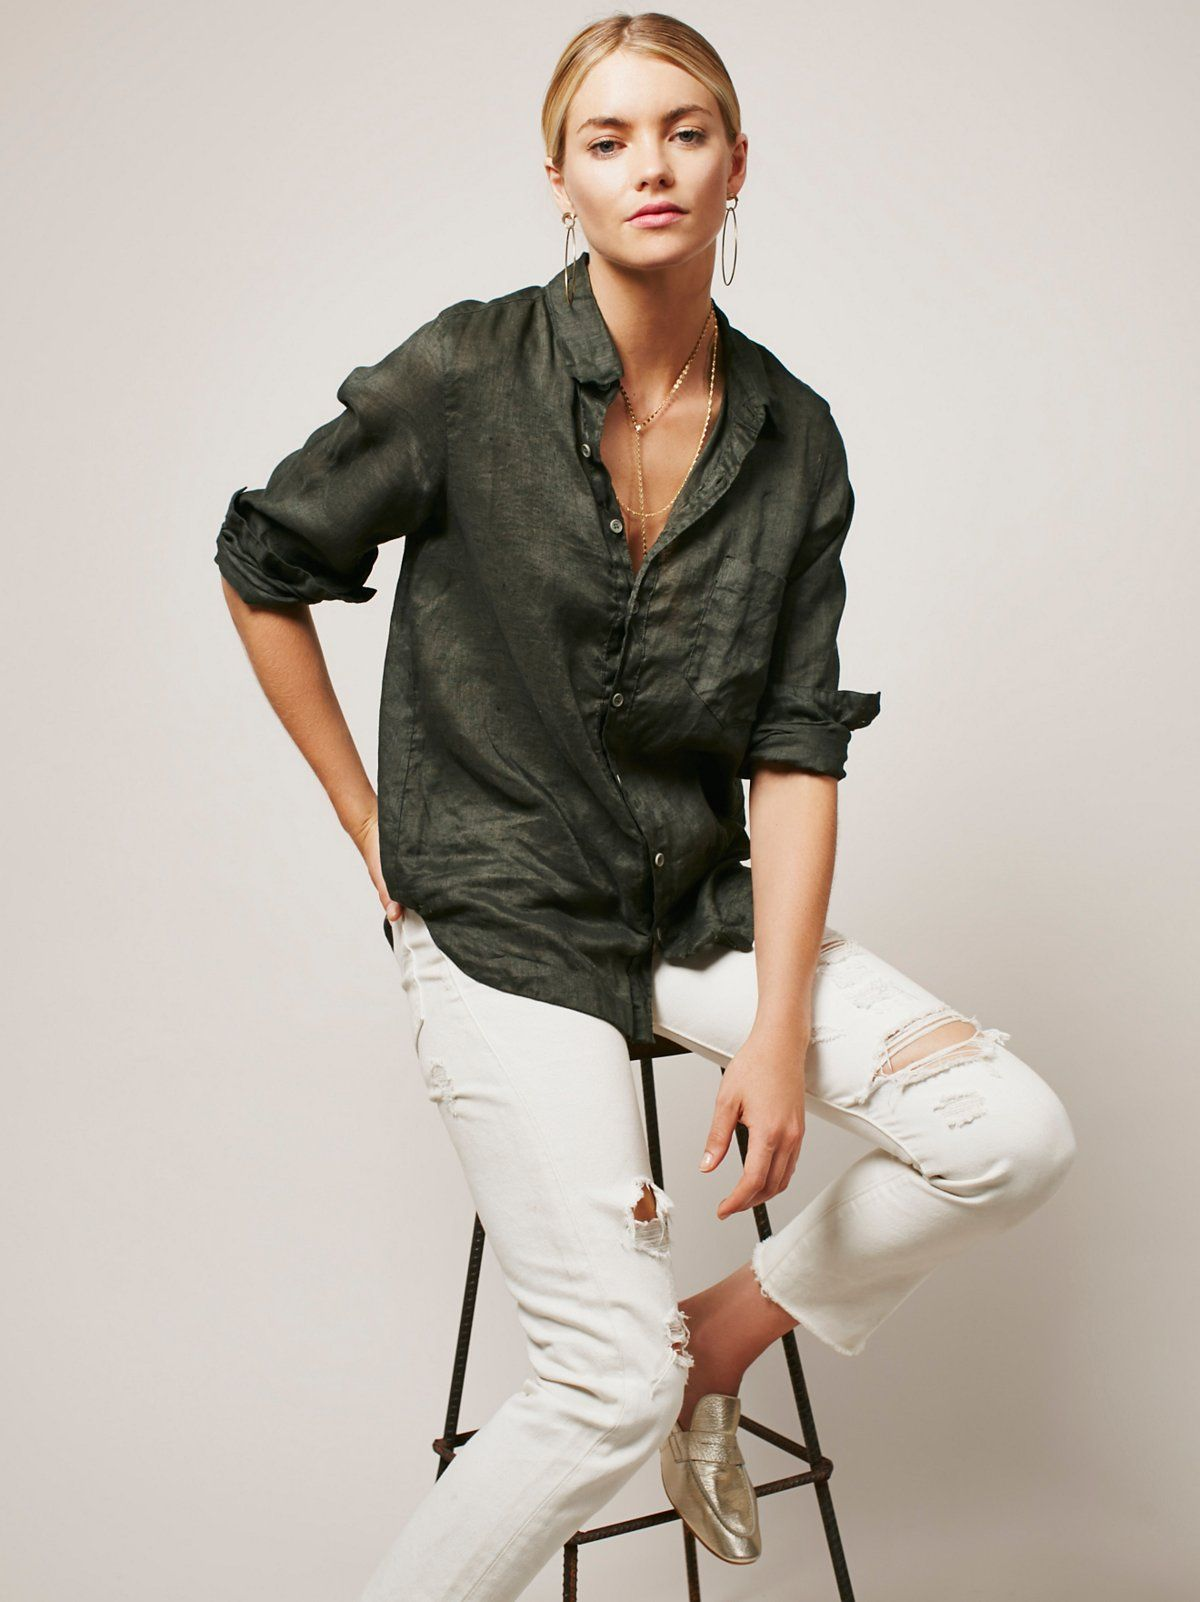 American made linen button down with a rounded high-low hem that makes it perfect for everyday wear. Large front pocket detail. A staple piece for every FP girl.